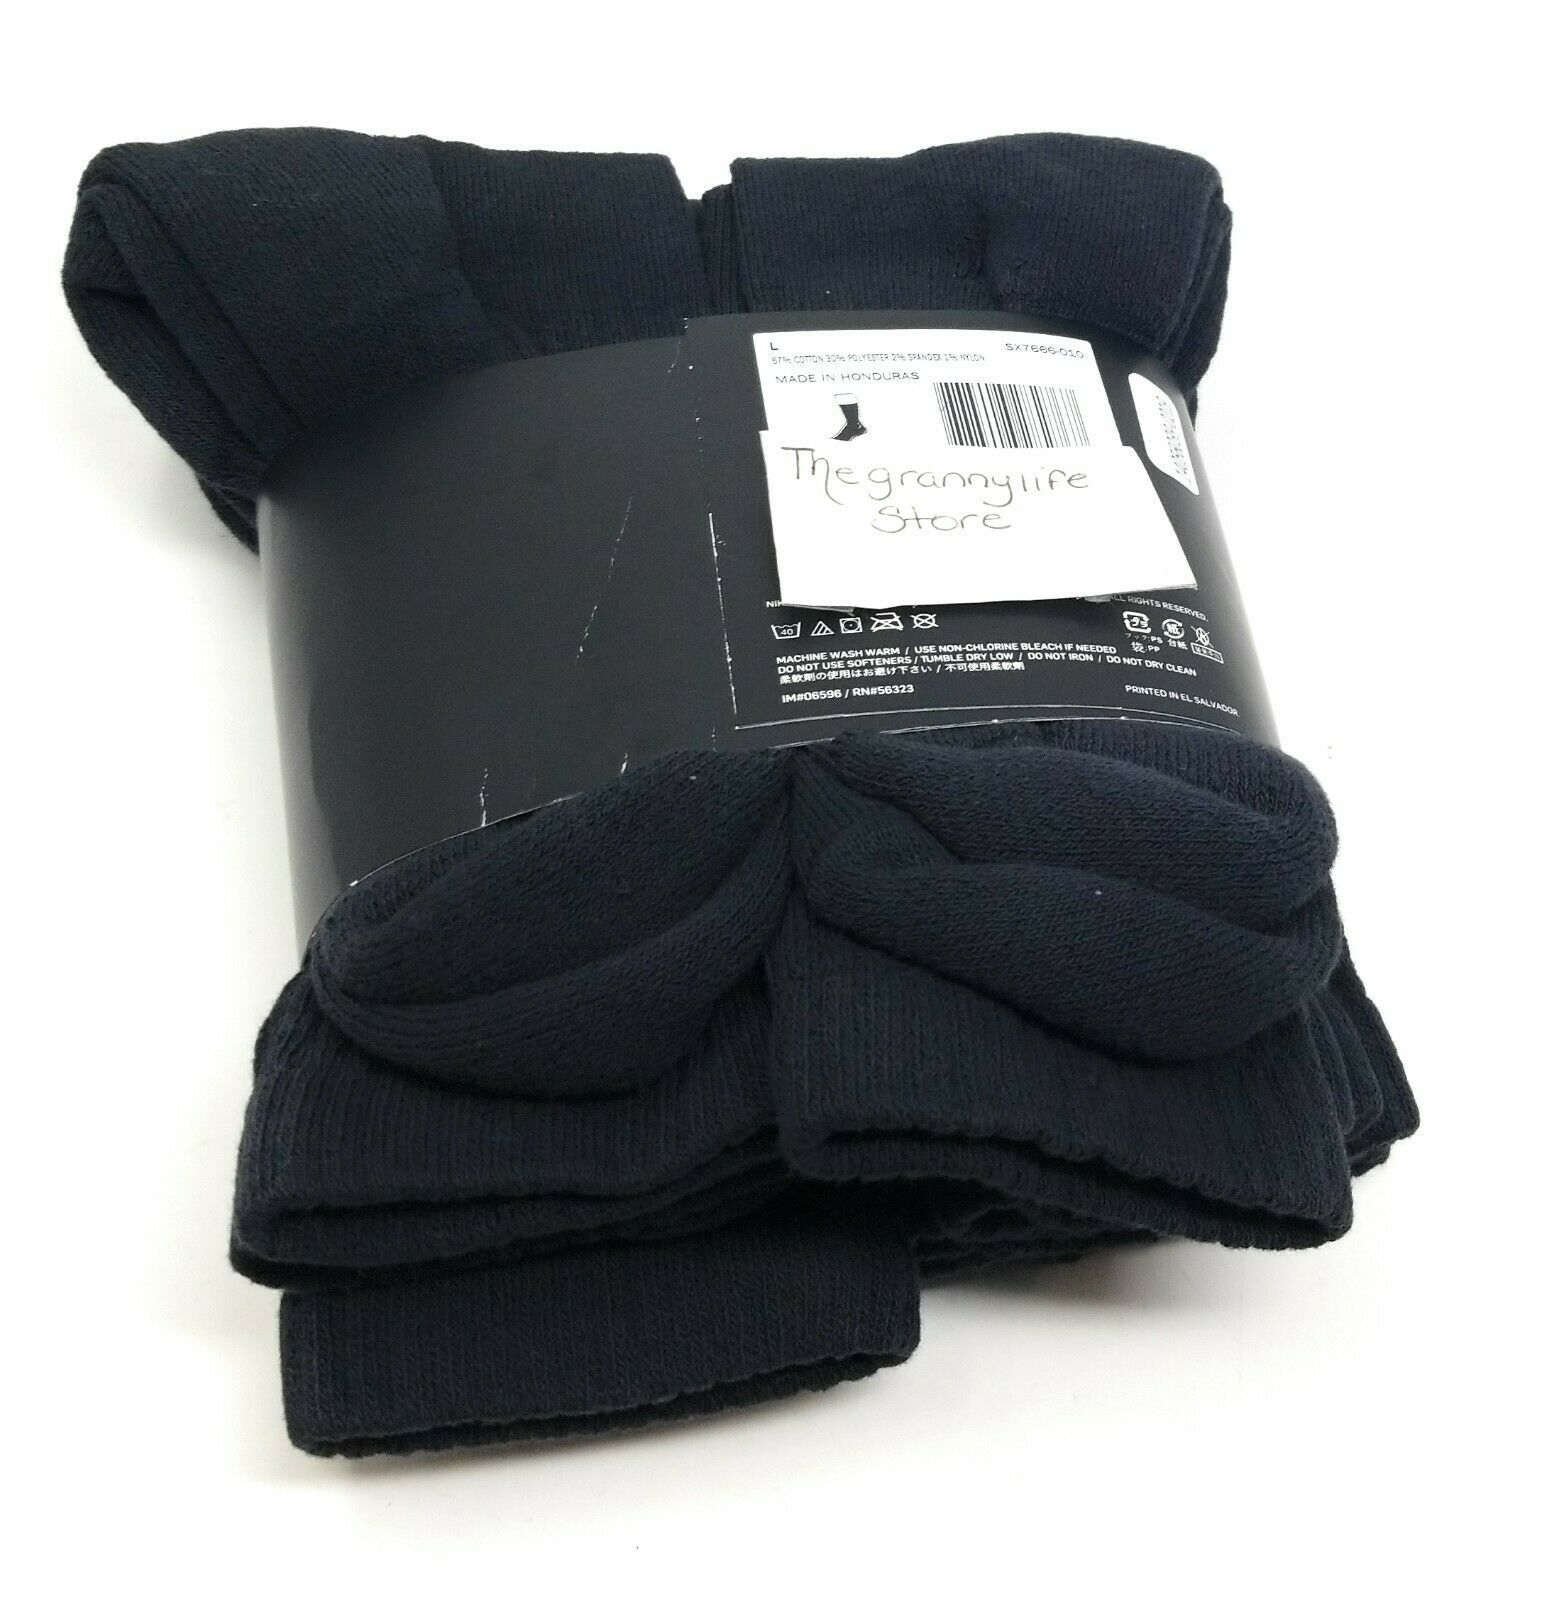 Nike Crew Socks L Men 8-12 Women 10-13 Black Cotton Cushioned Dri Fit 6 Pairs image 4